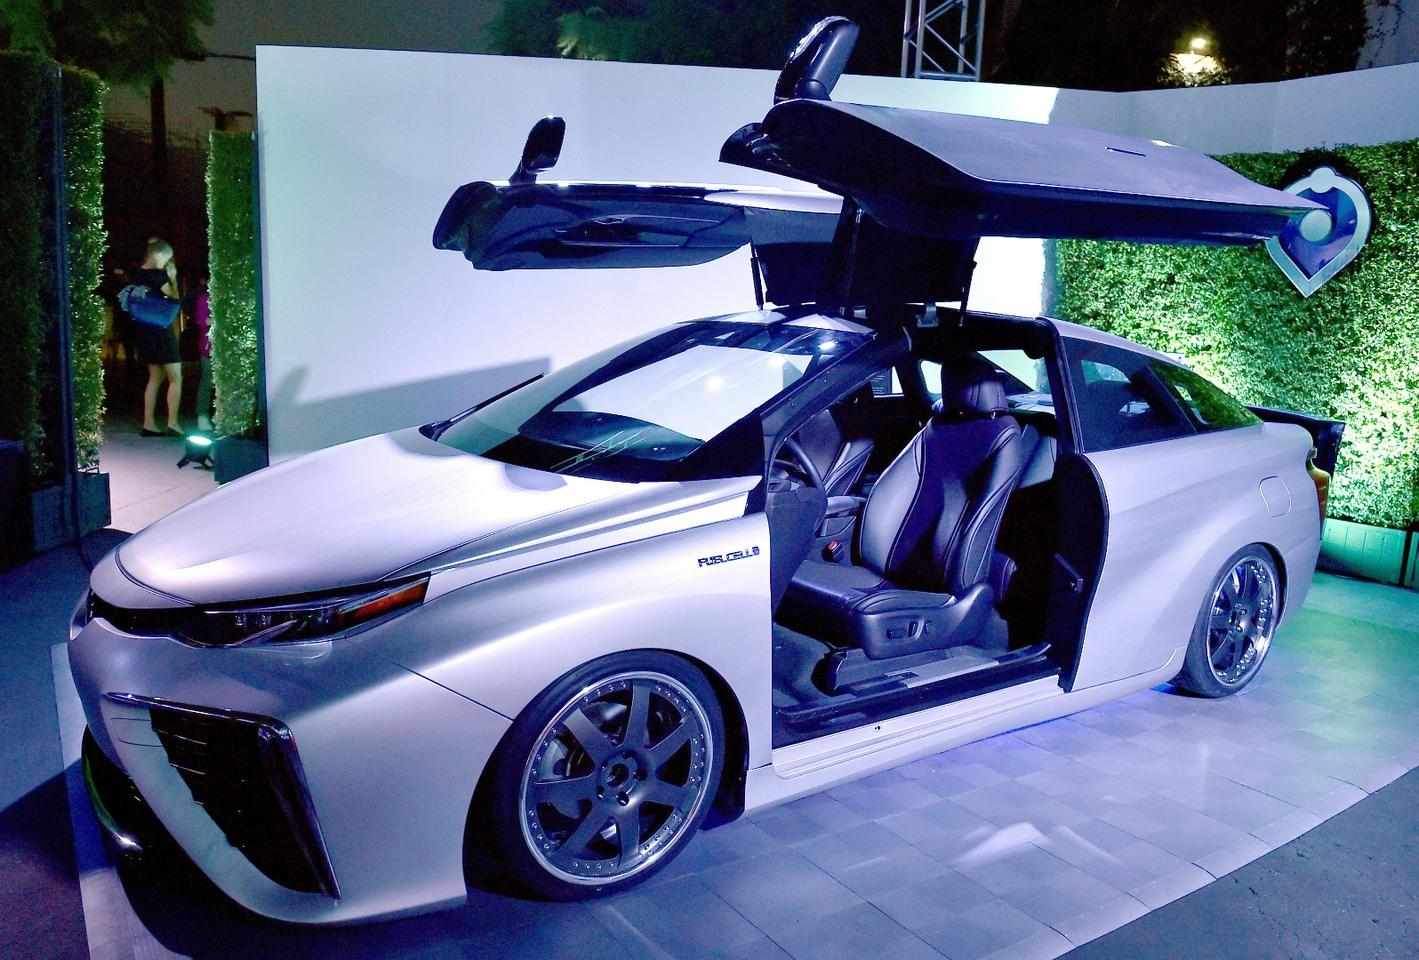 Toyota celebrates with a special Mirai